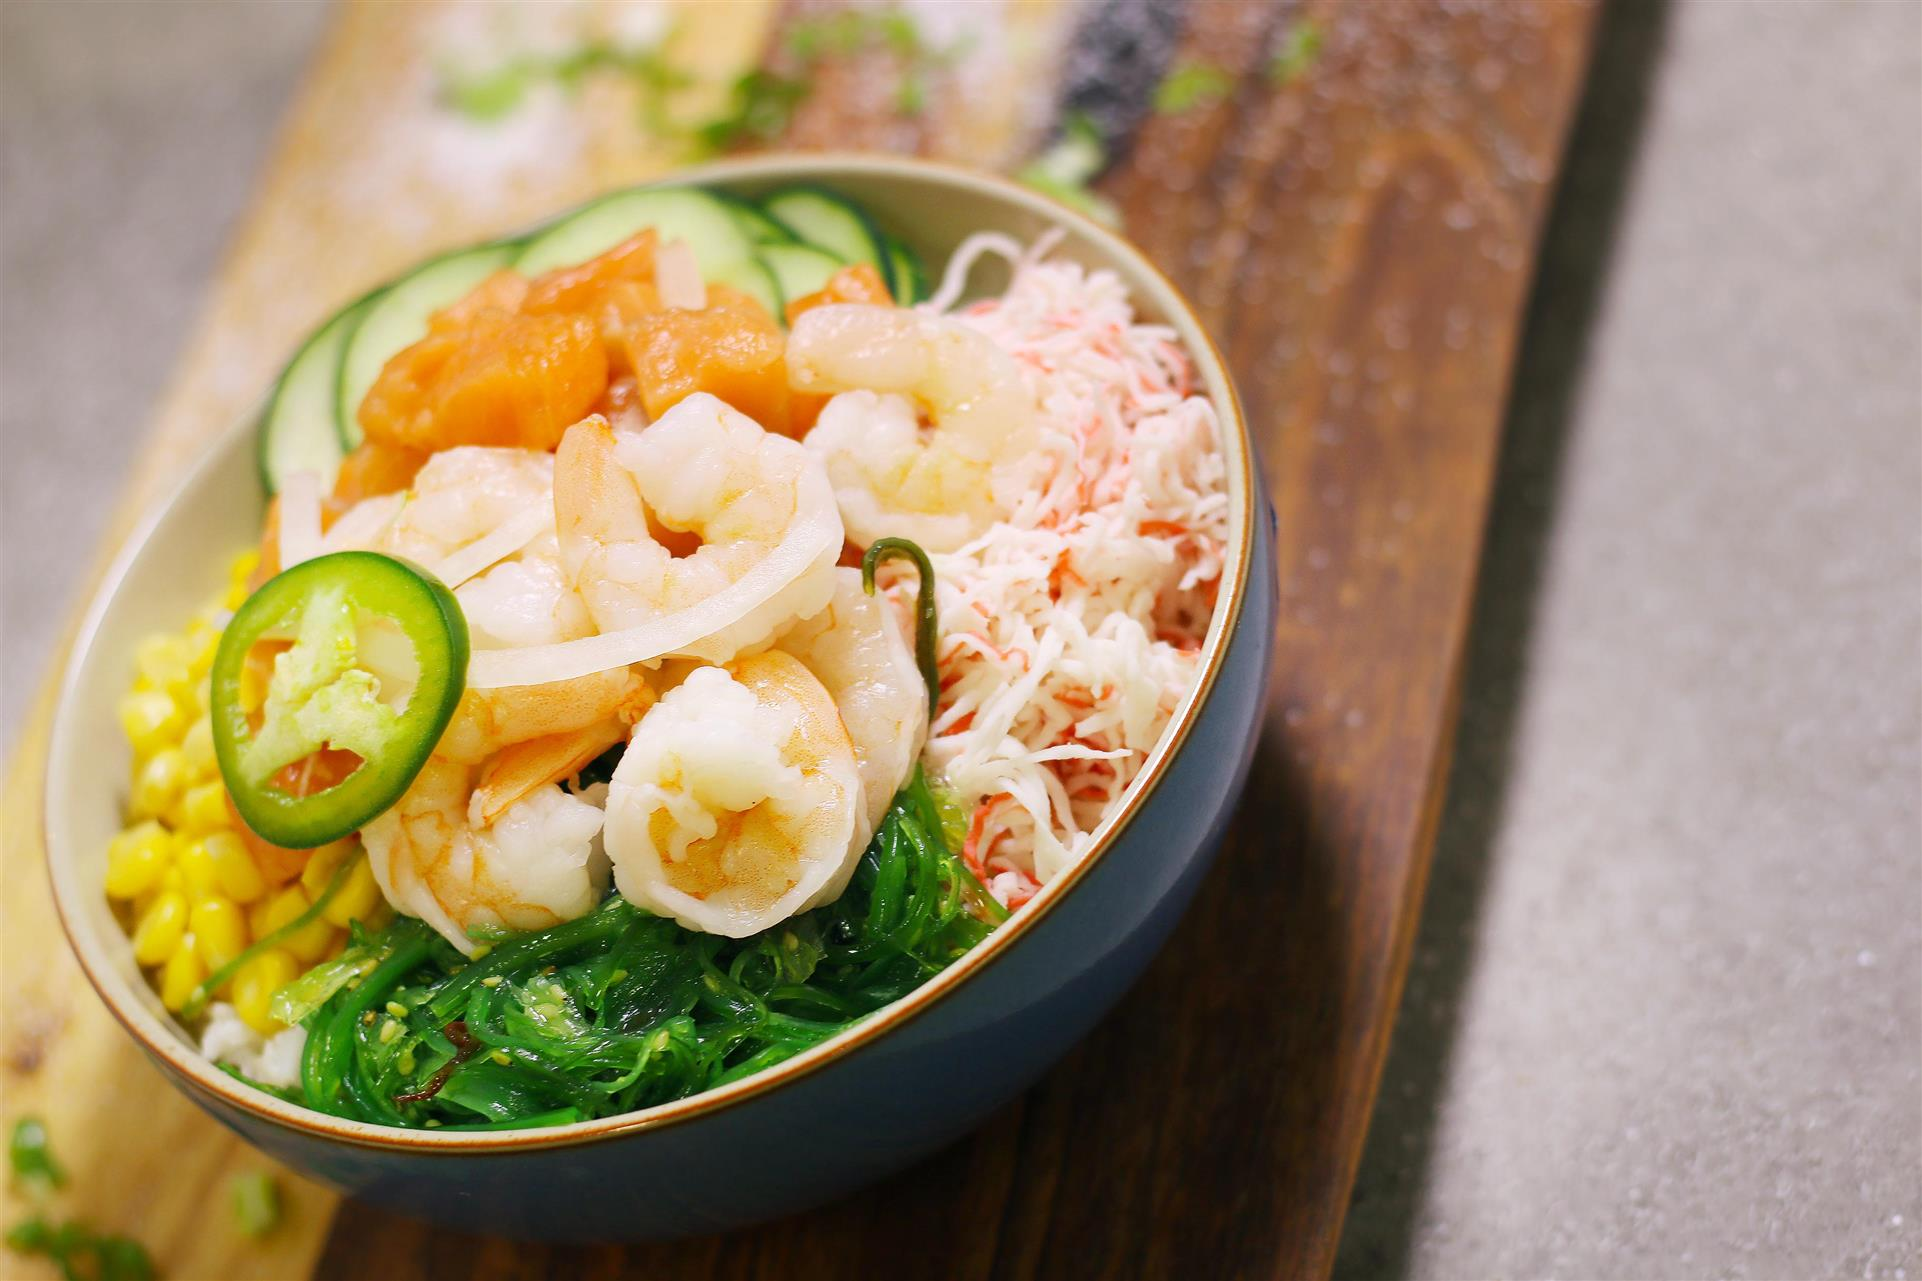 poke bowl with various ingredients, including shrimp